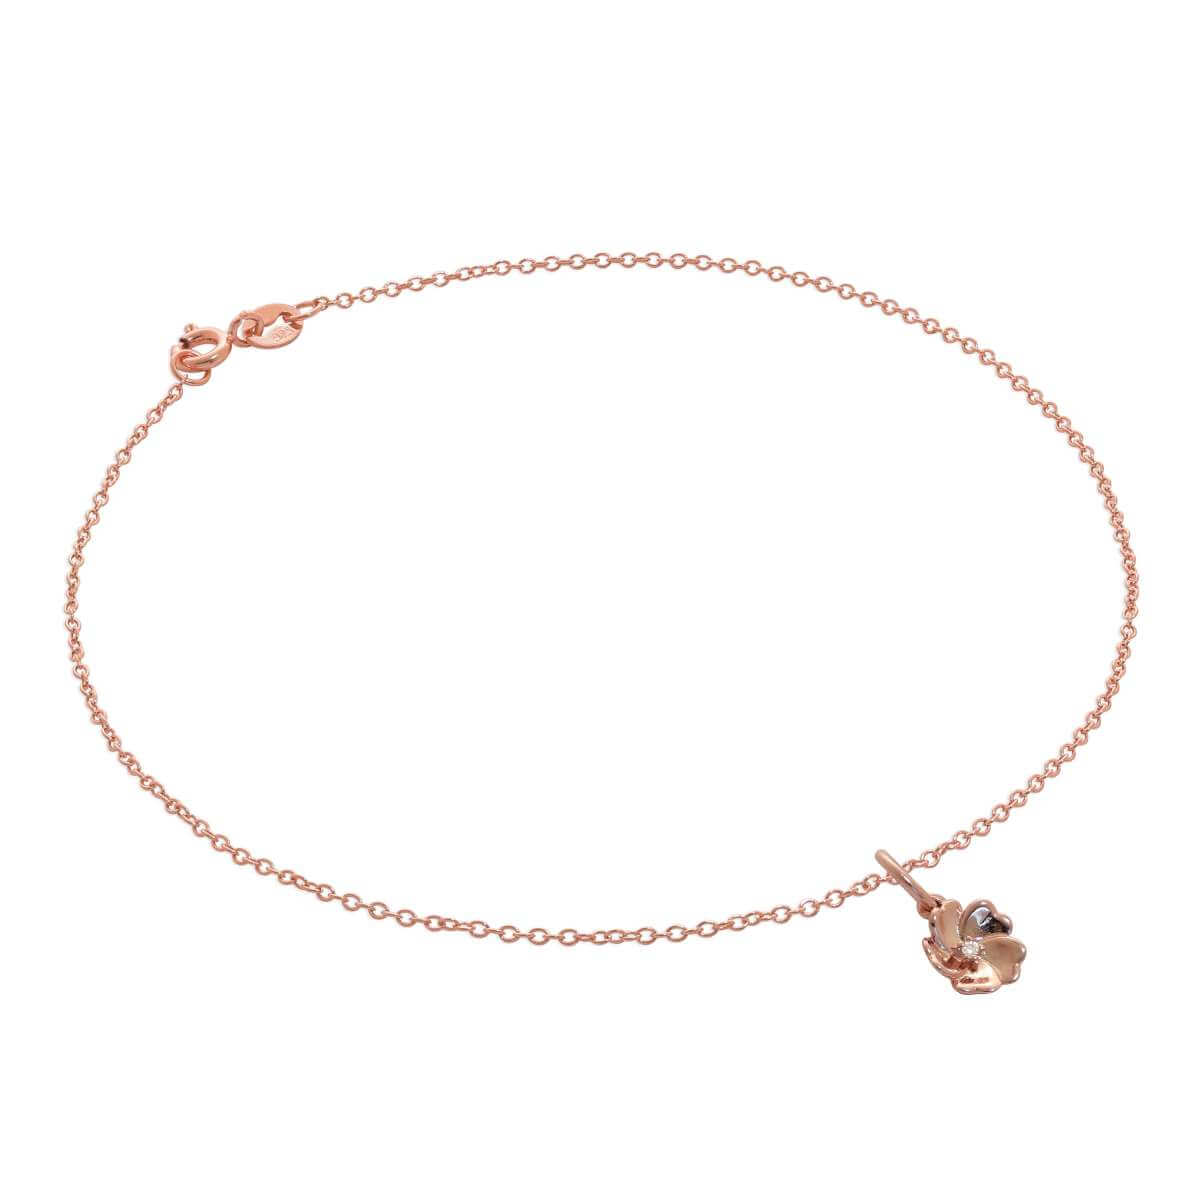 Rose Gold Plated Sterling Silver Trace Chain Anklet with Genuine Diamond Flower Charm